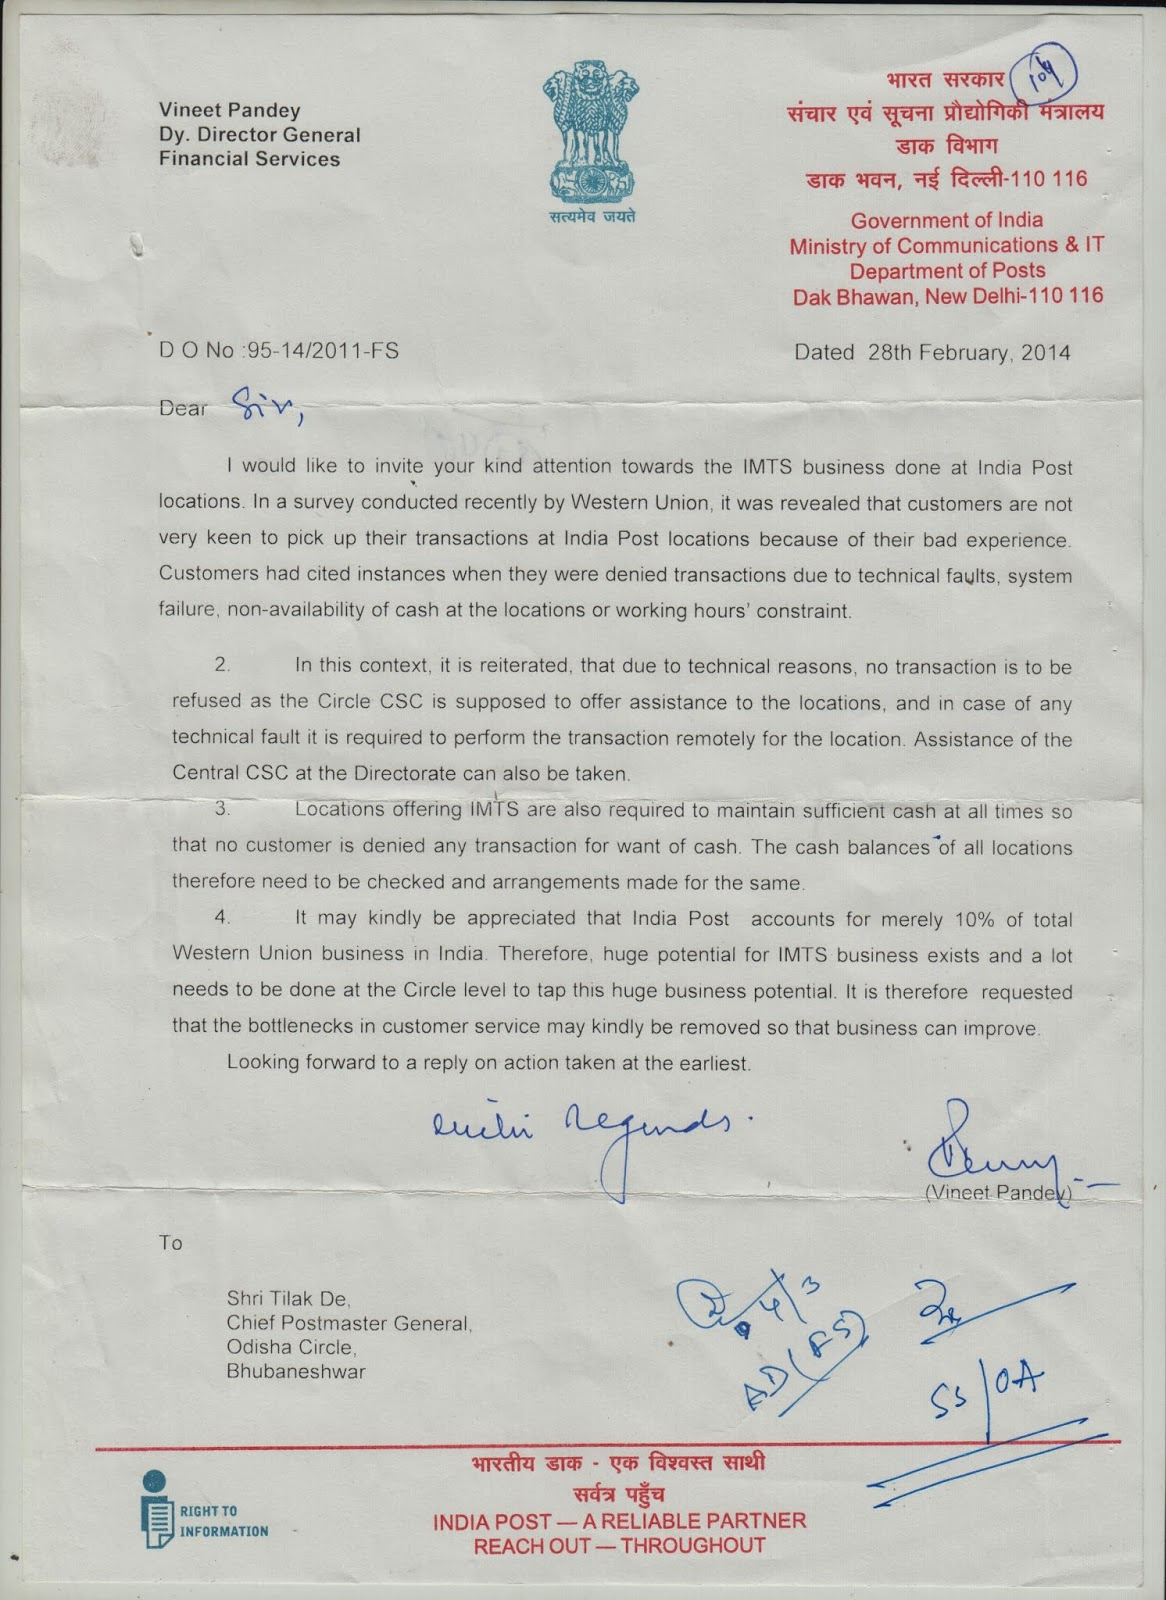 SAMBALPUR POST: IMTS business done at India Post Offices & its